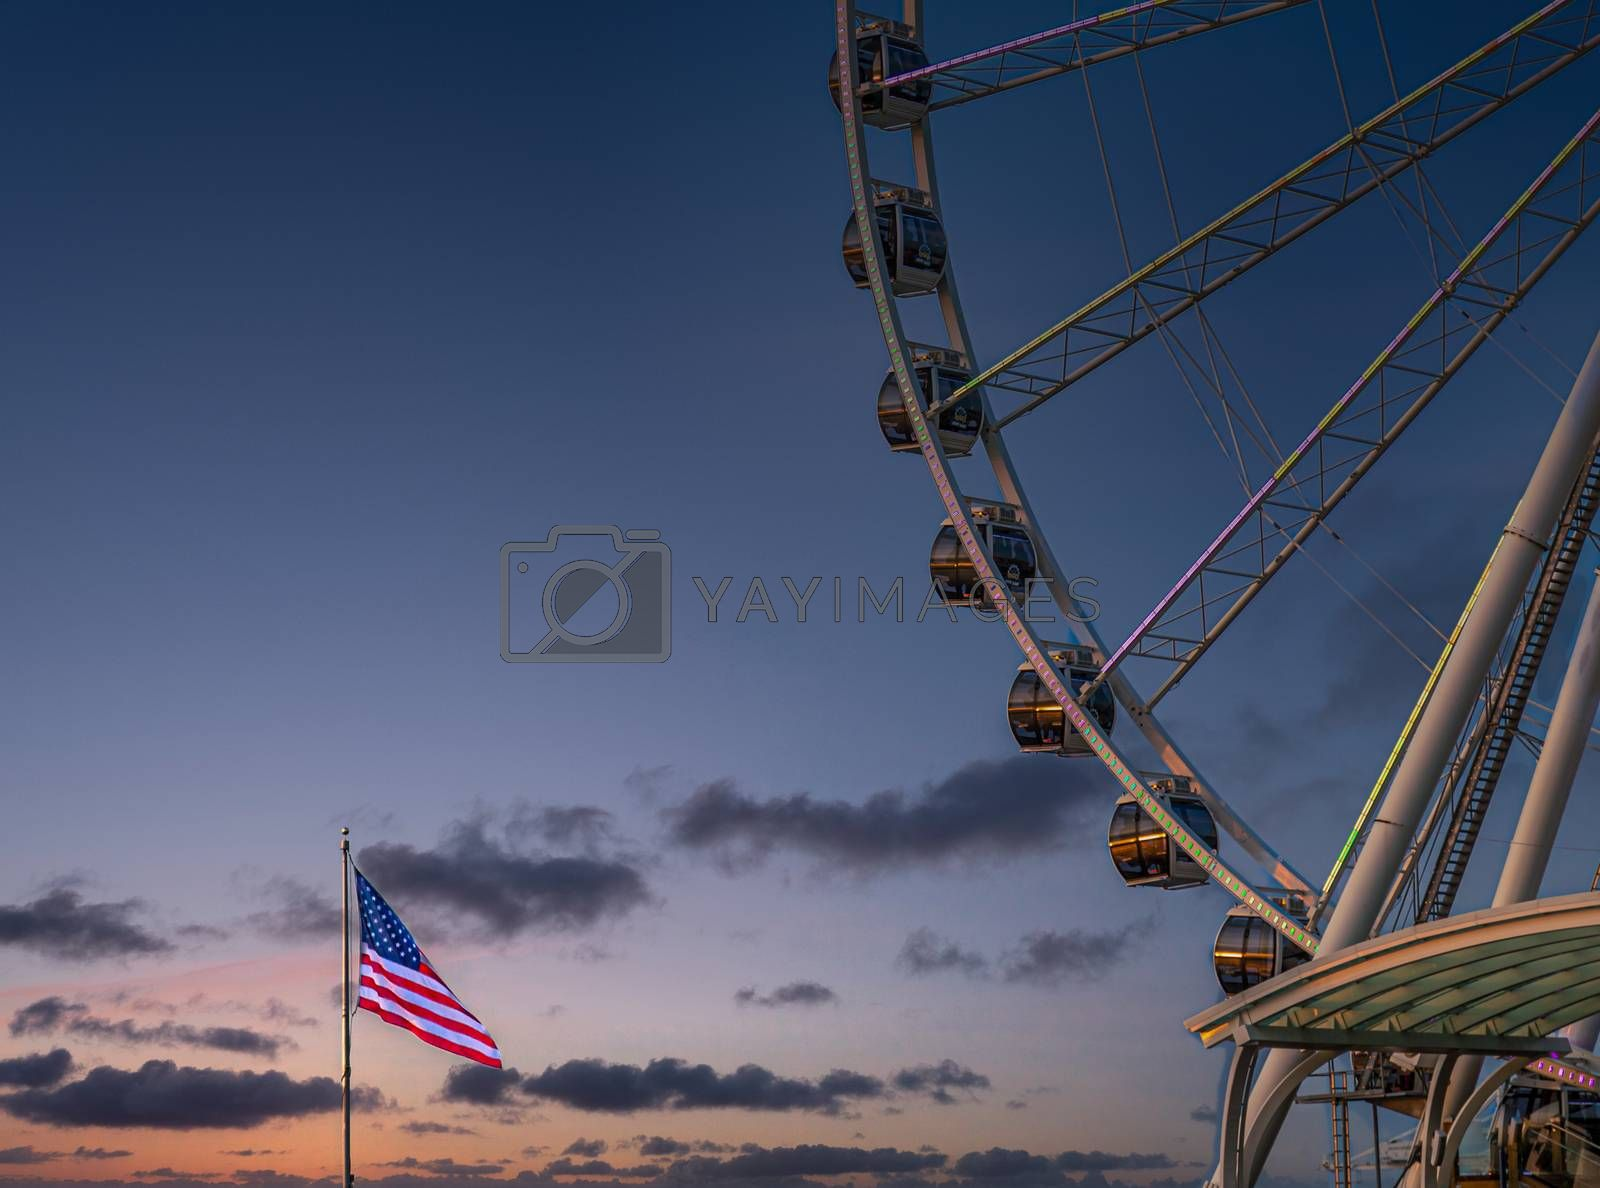 The ferris wheel on the waterfront of Seattle, Washington in late afternoon light